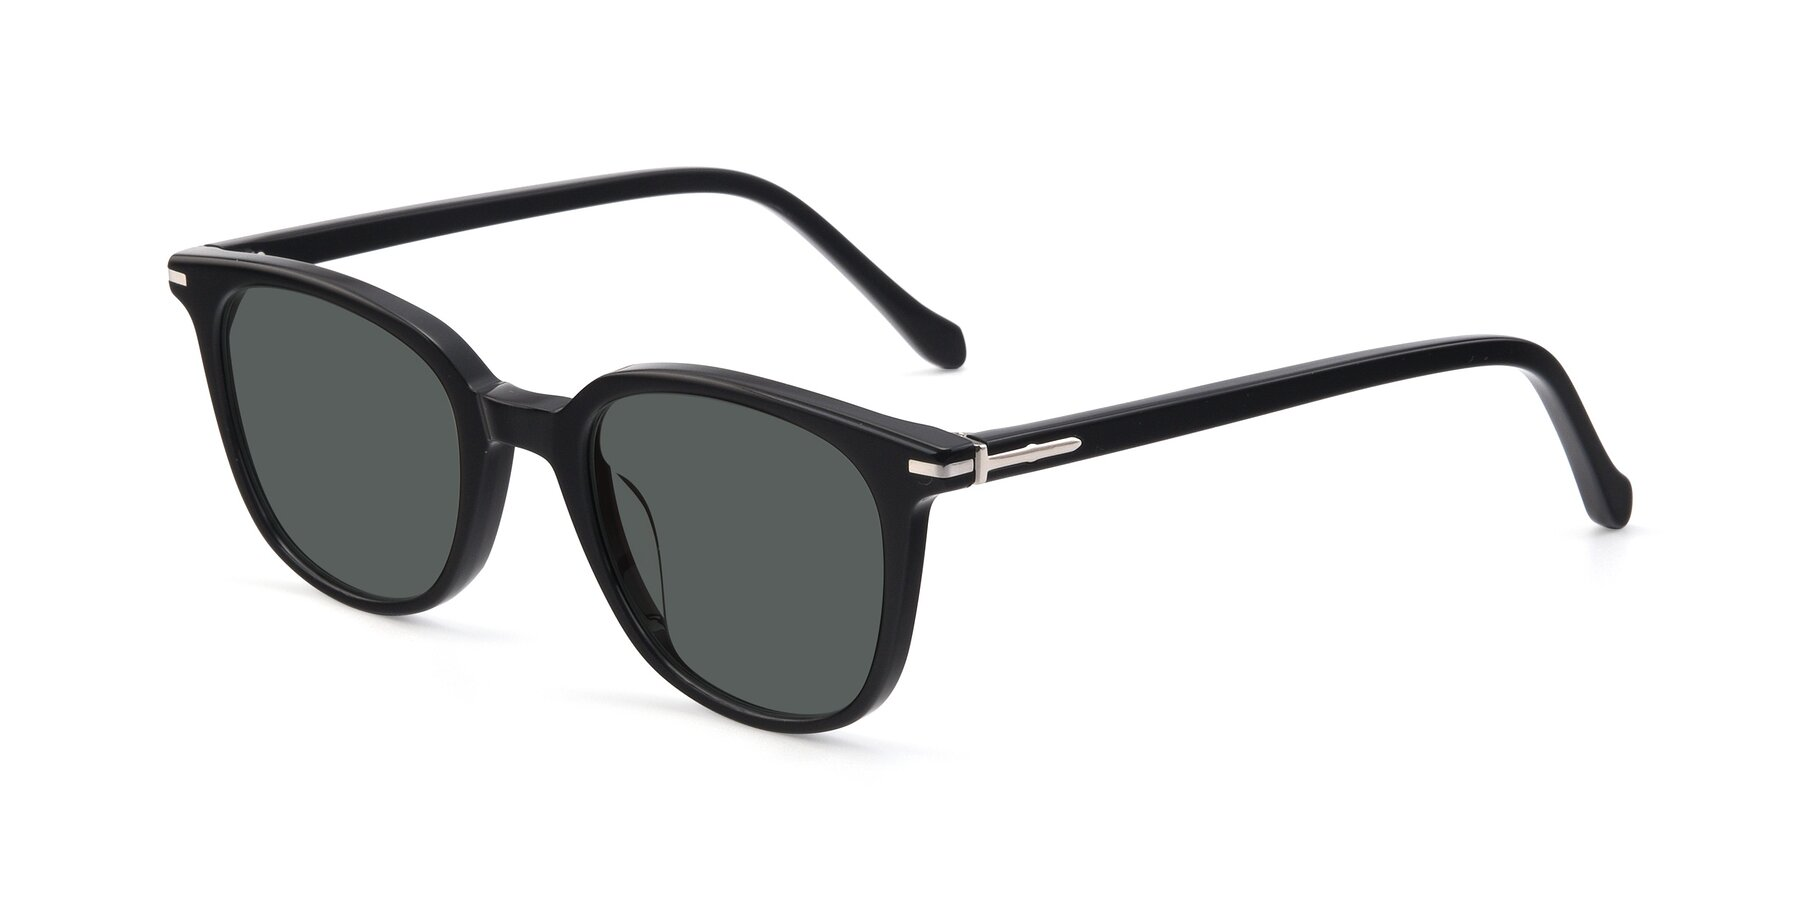 Angle of 17562 in Black with Gray Polarized Lenses